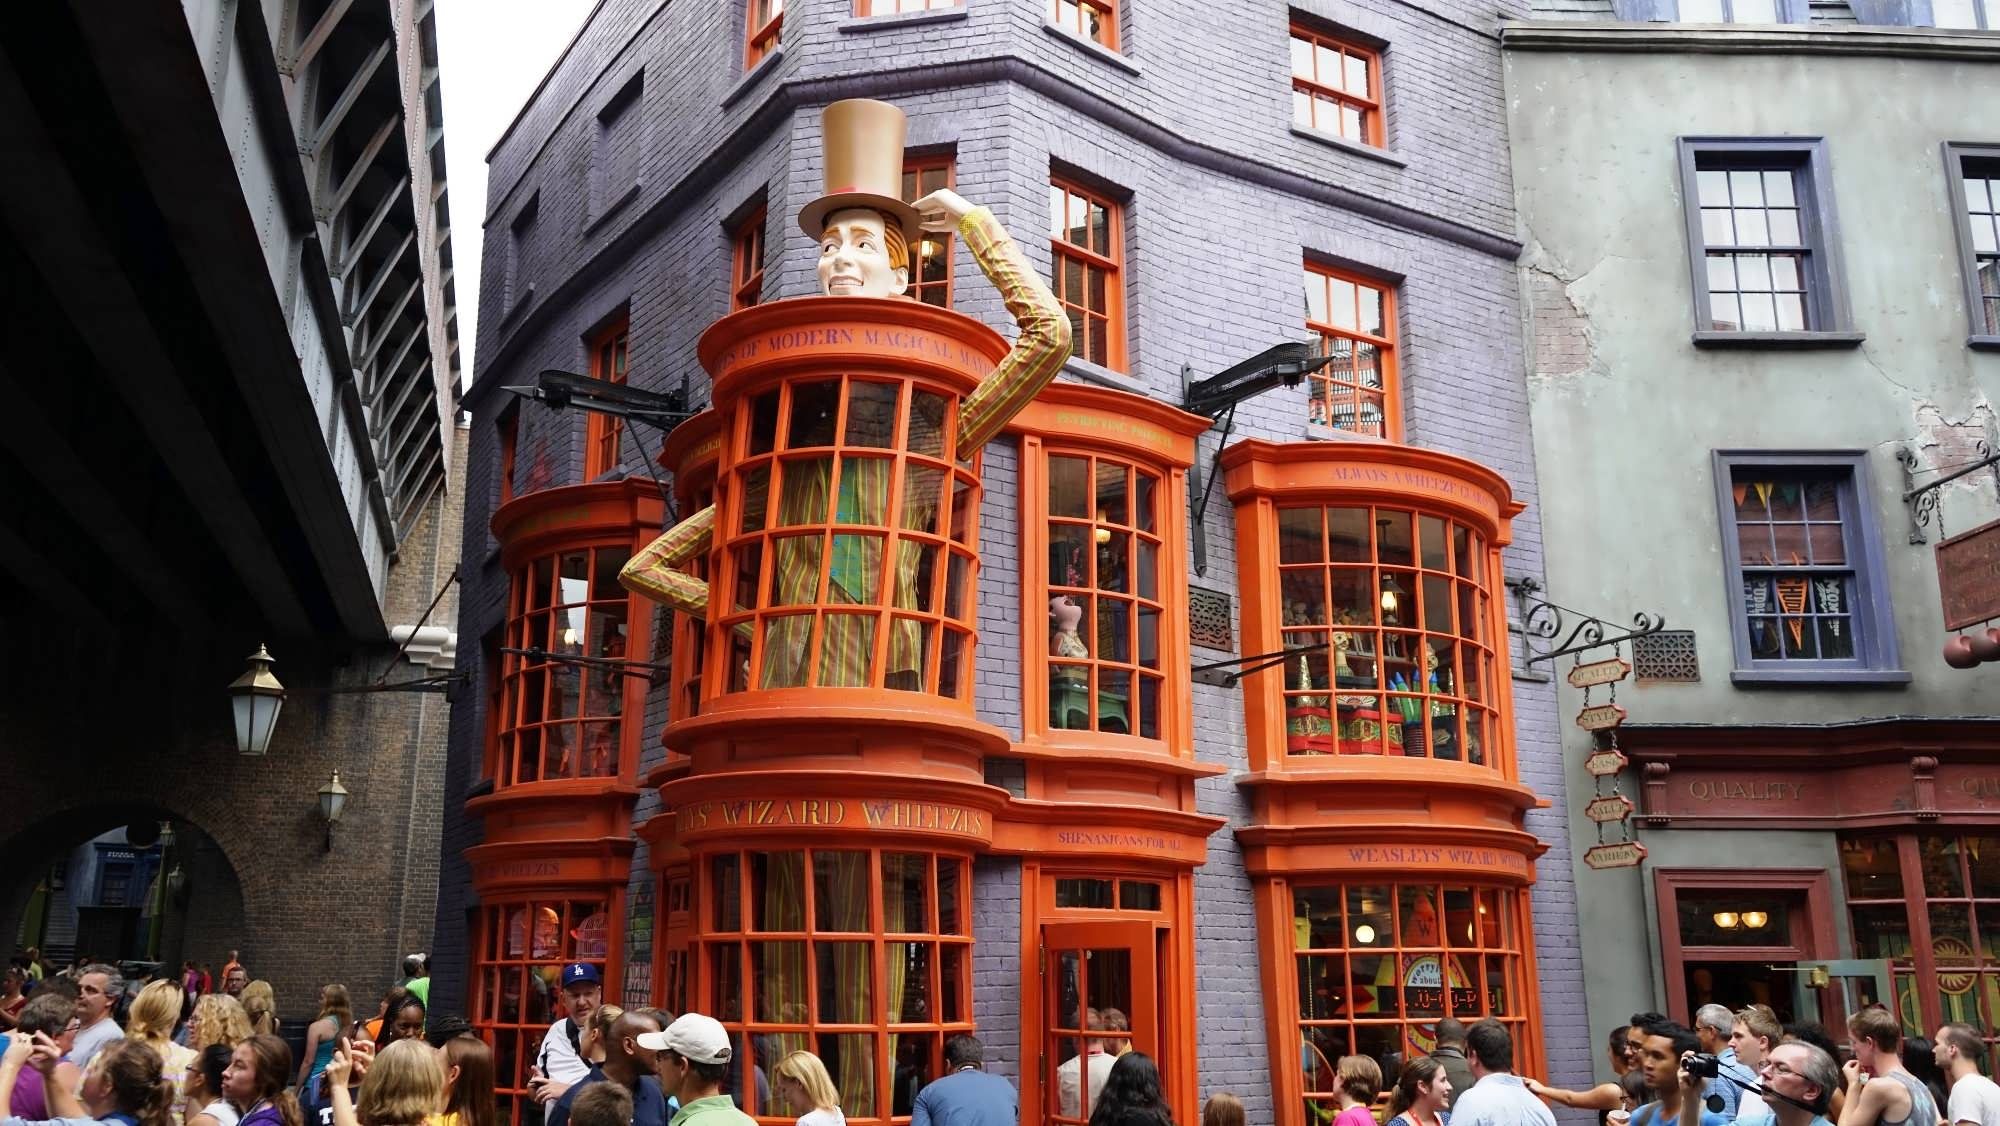 diagon-alley-preview-universal-studios-florida-07-02-147026-oi.jpg